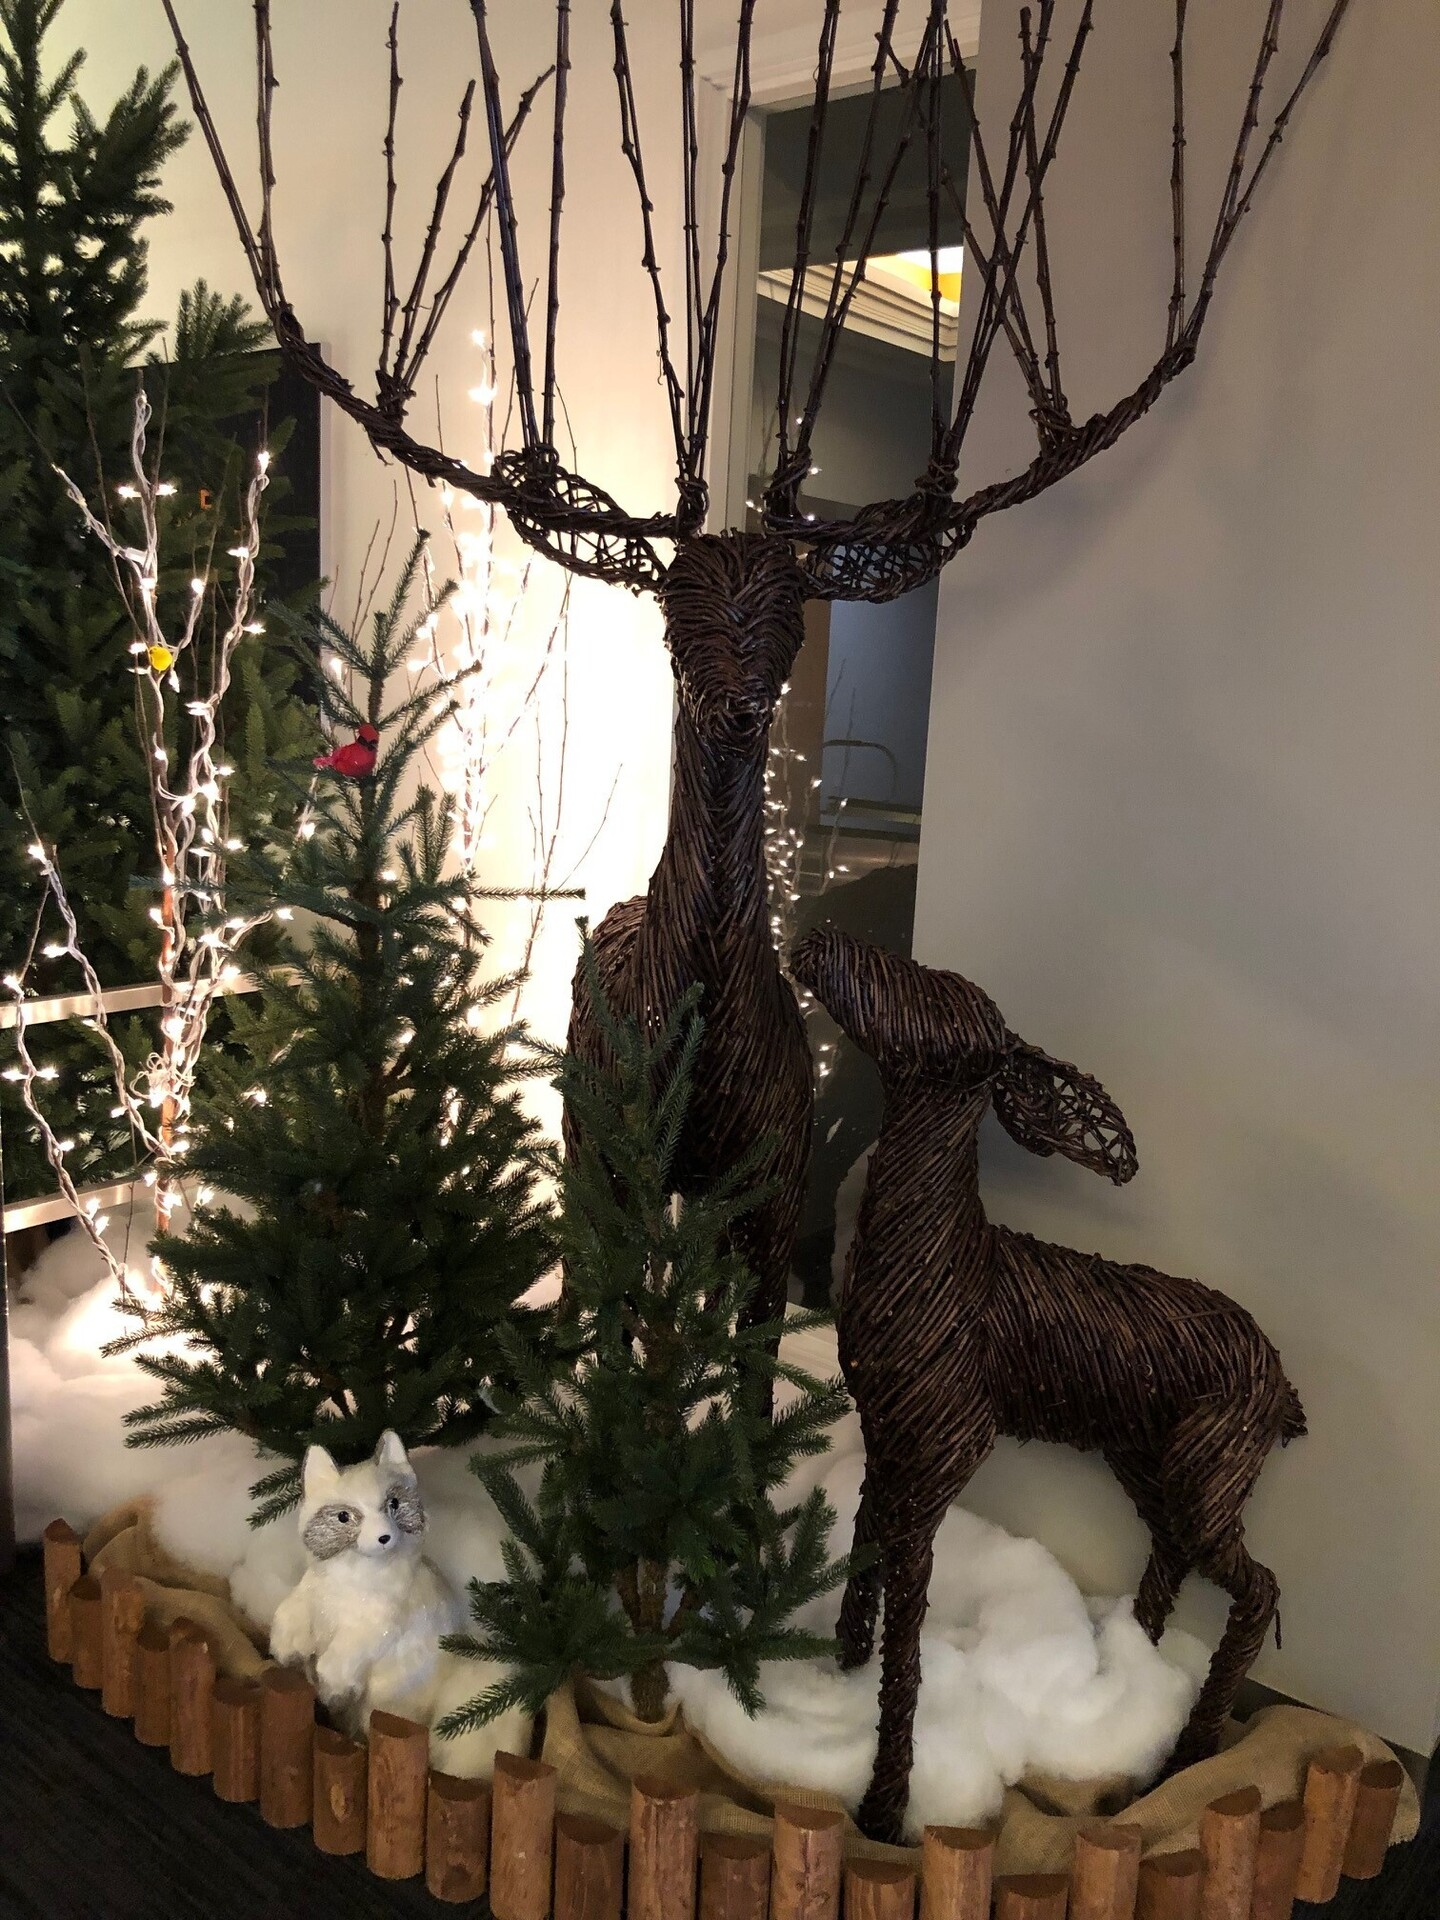 Holiday decor by McCaren Designs doesn't need to be lights and trees, they have the perfect options to choose from to fit your space.